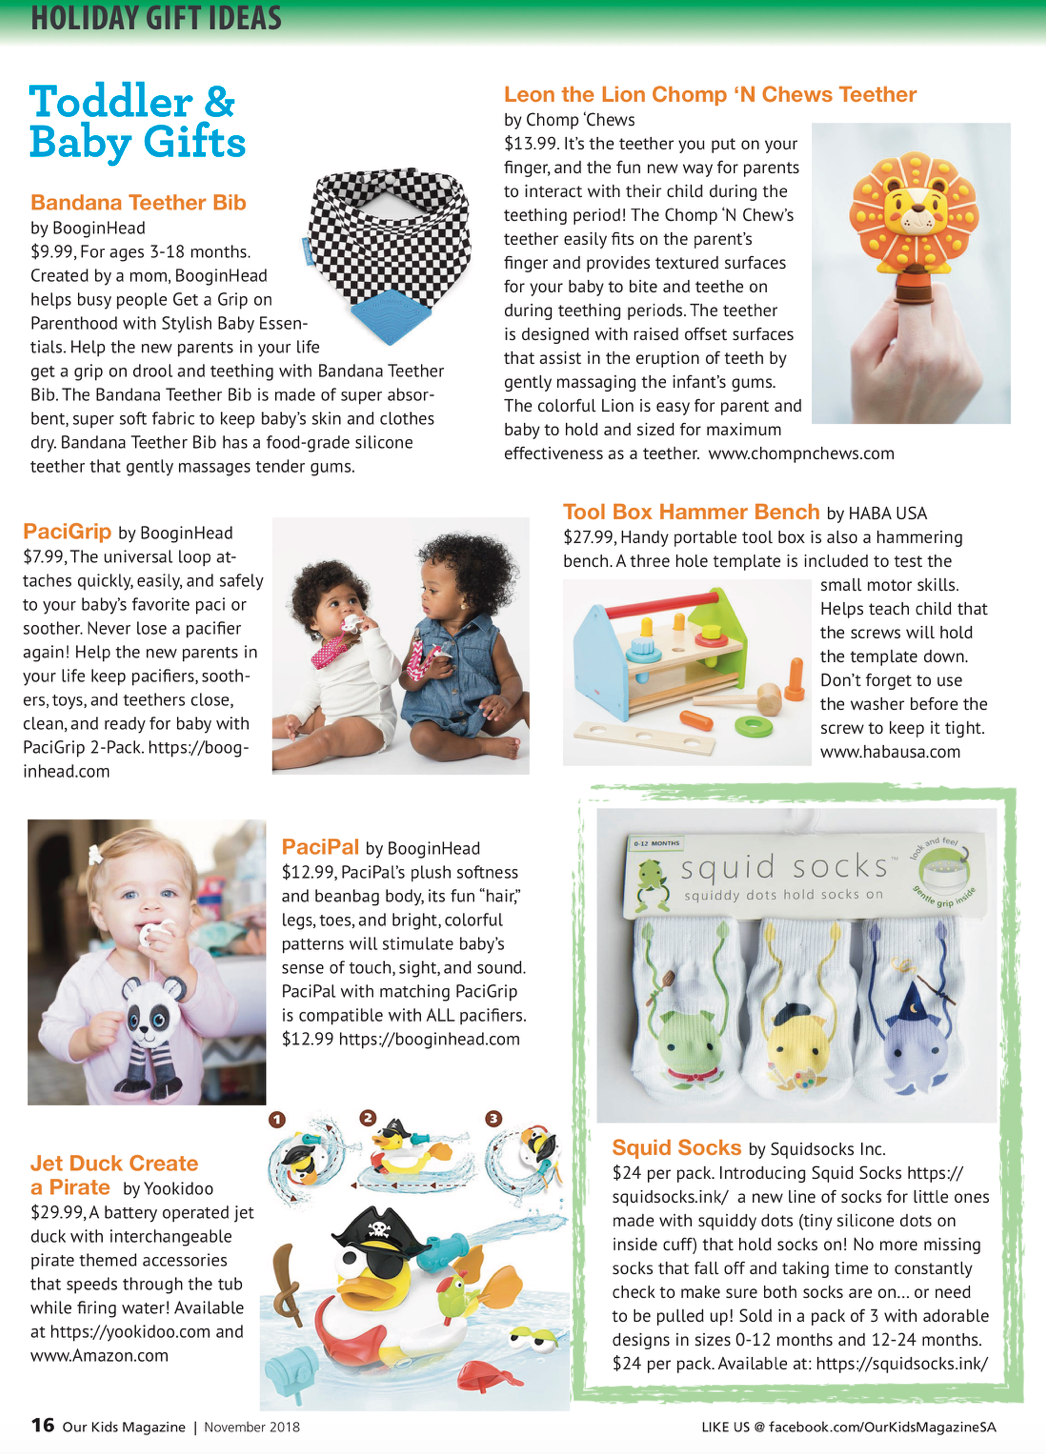 Our Kids San Antonio Magazine November 2018 Holiday Gift Guide pg16